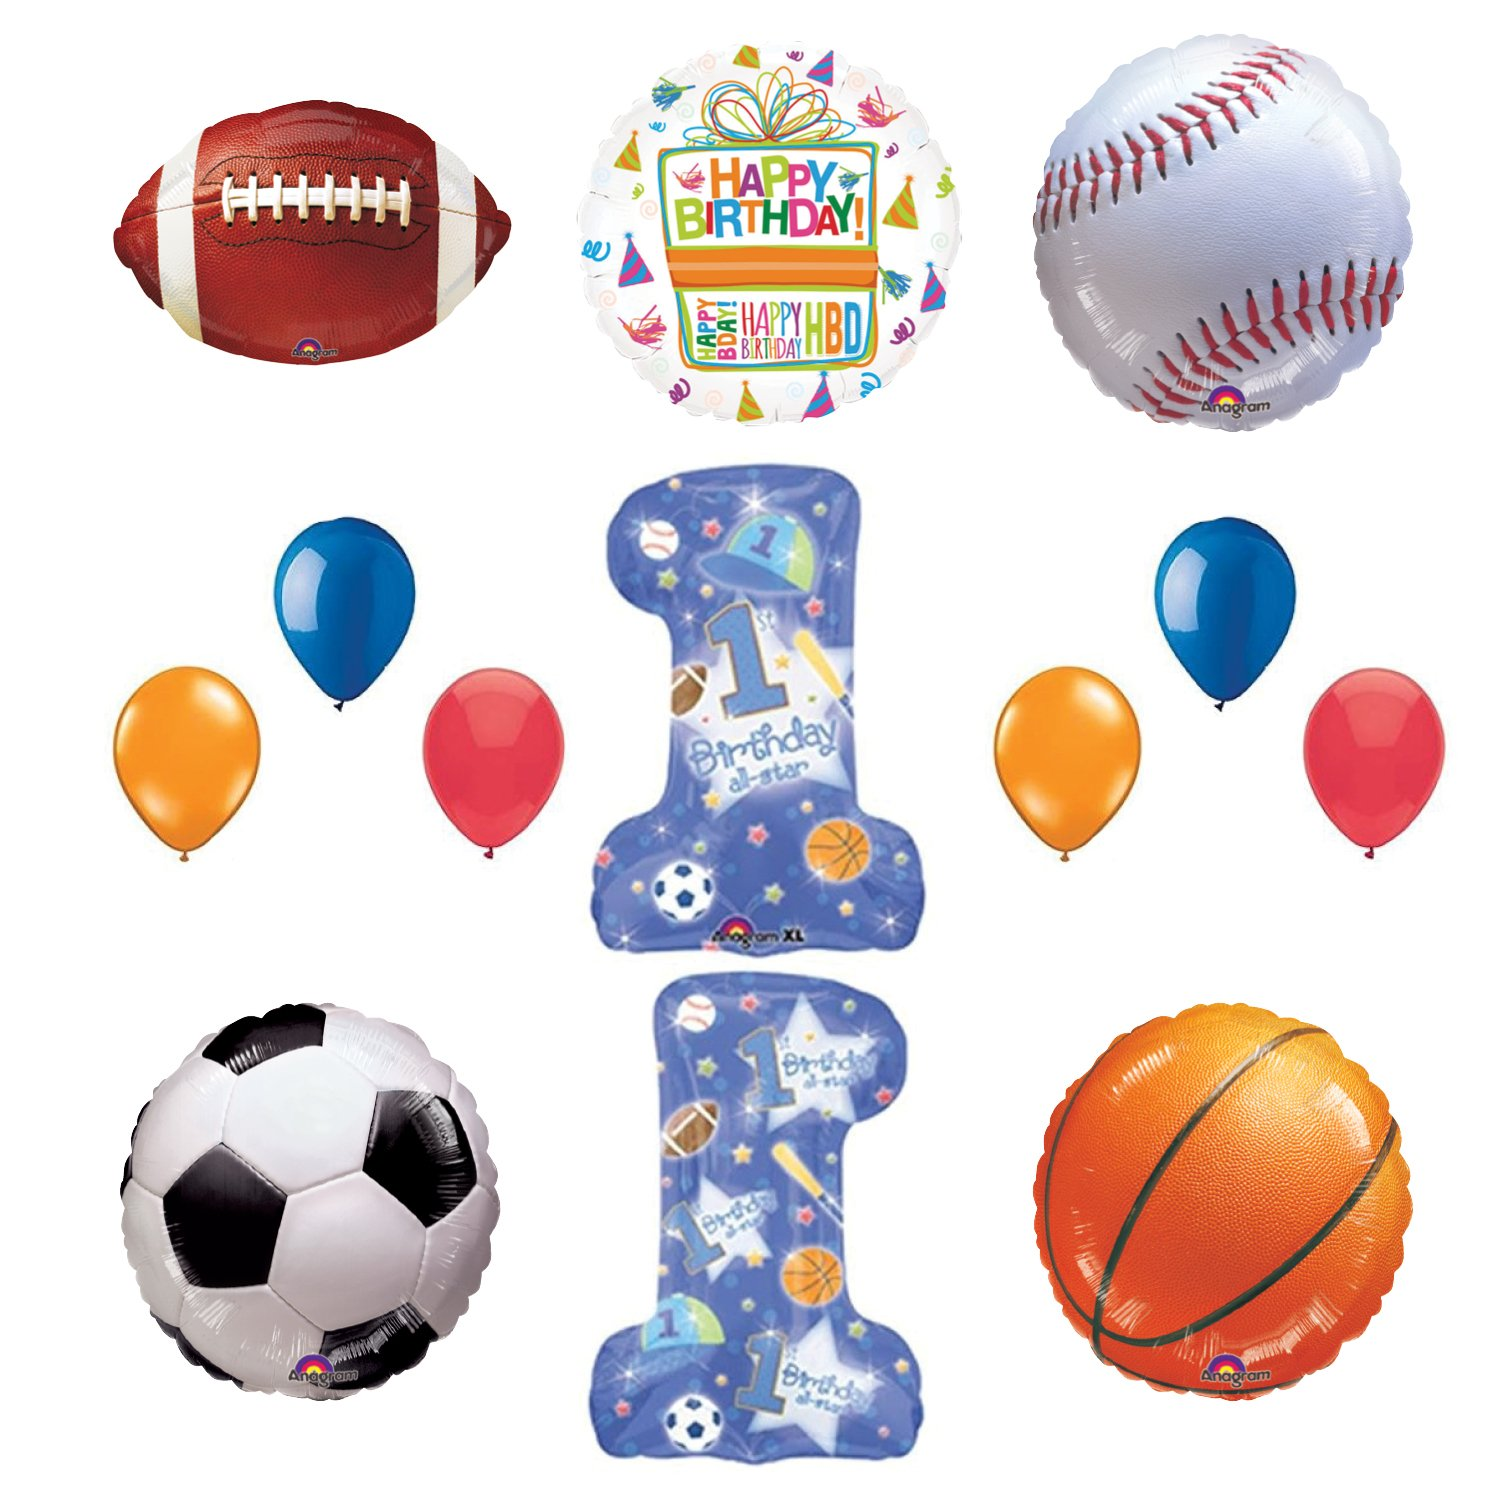 Baseball Player 1st Birthday Party Supplies Balloon Bouquet Decorations Mayflower